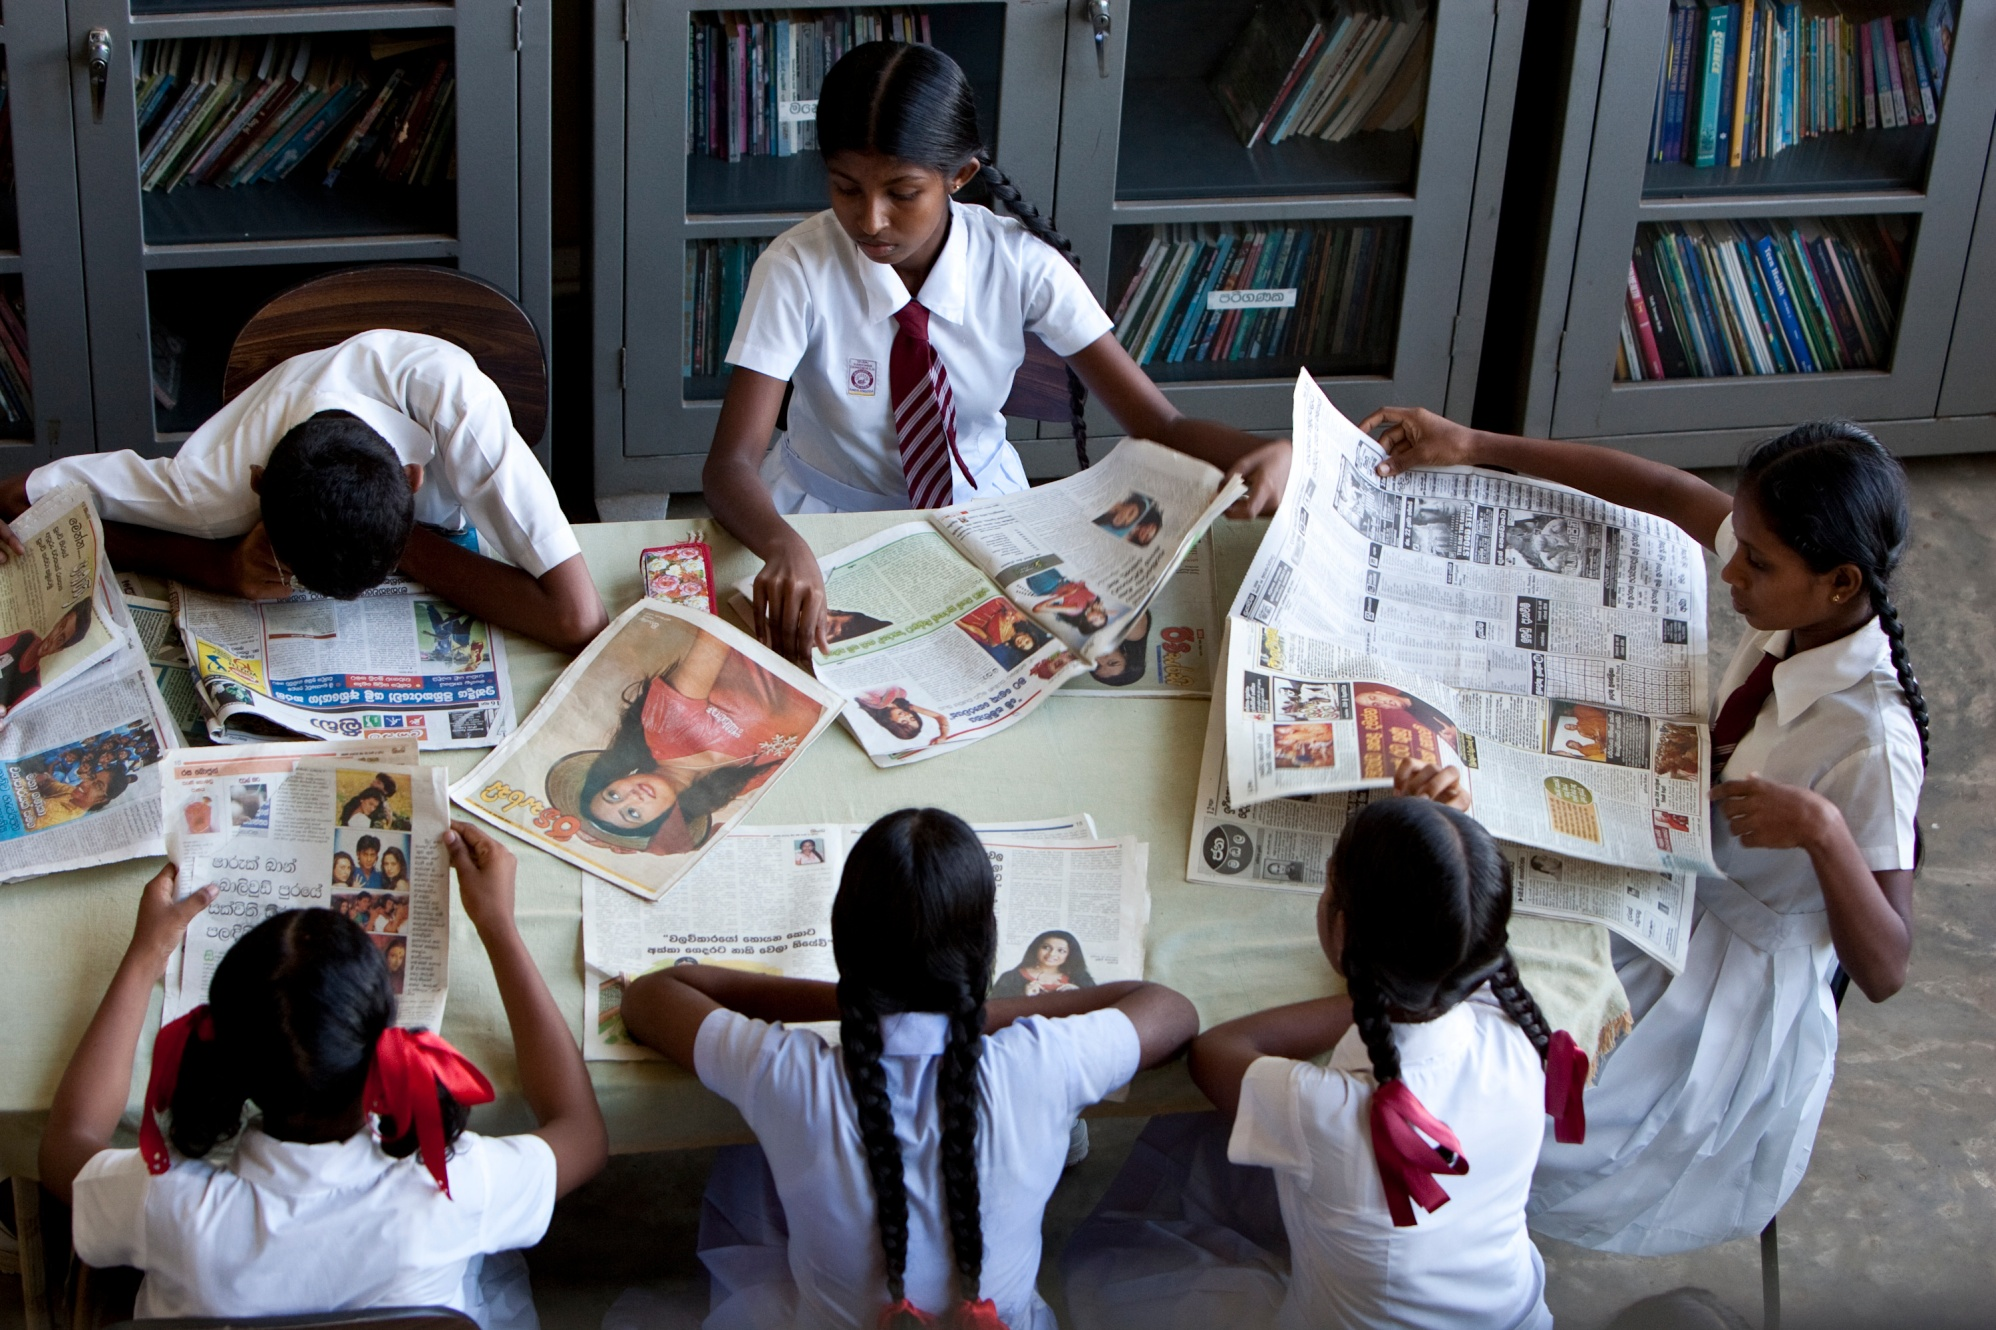 Students study at Randombe Kanishta Vidyalaya in Ambalangoda, Sri Lanka. This school was built through the Schools Reawaken project after the 2004 tsunami. District 3220 (Sri Lanka) raised funds for the project and received support from The Rotary Foundation, Standard Chartered Bank, and other contributors.